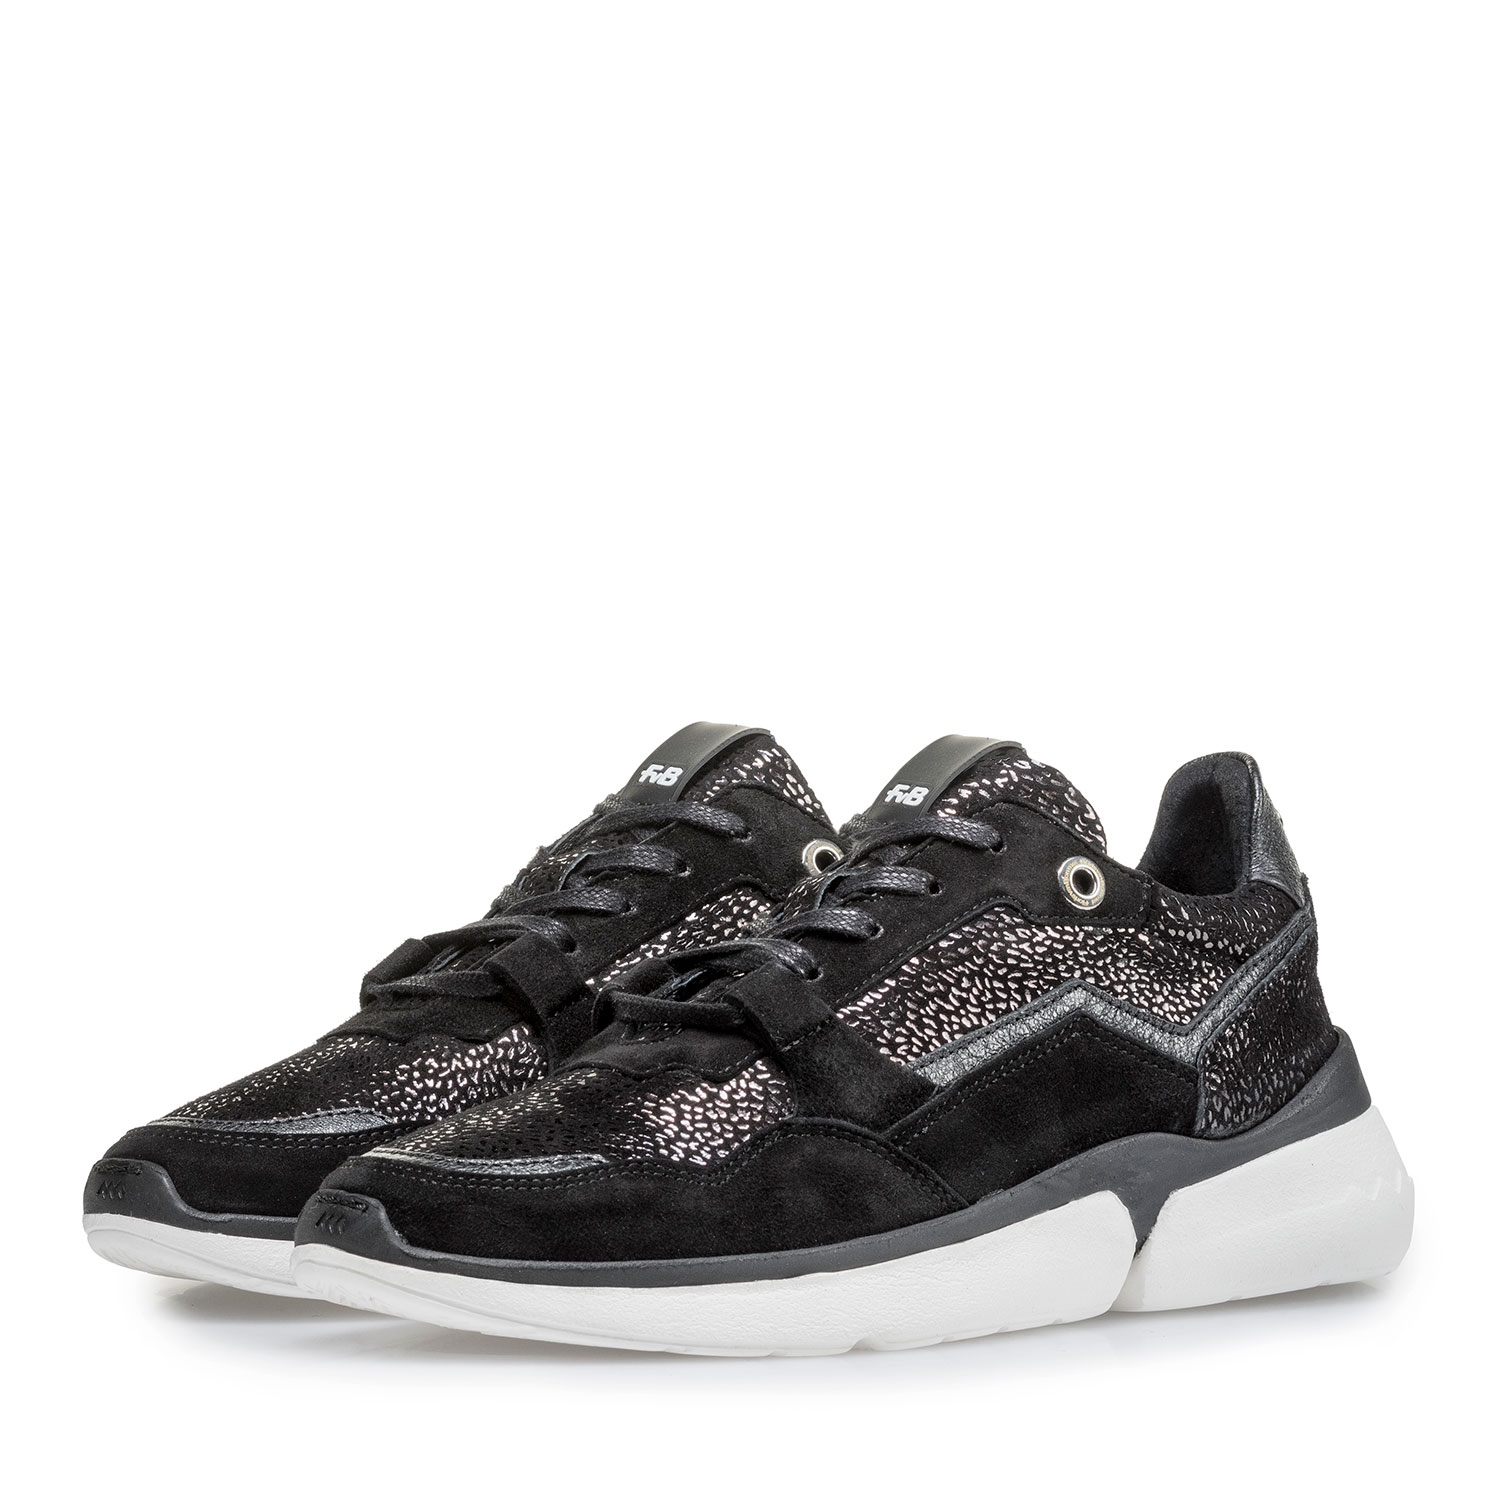 85291/12 - Black suede leather sneaker with metallic print